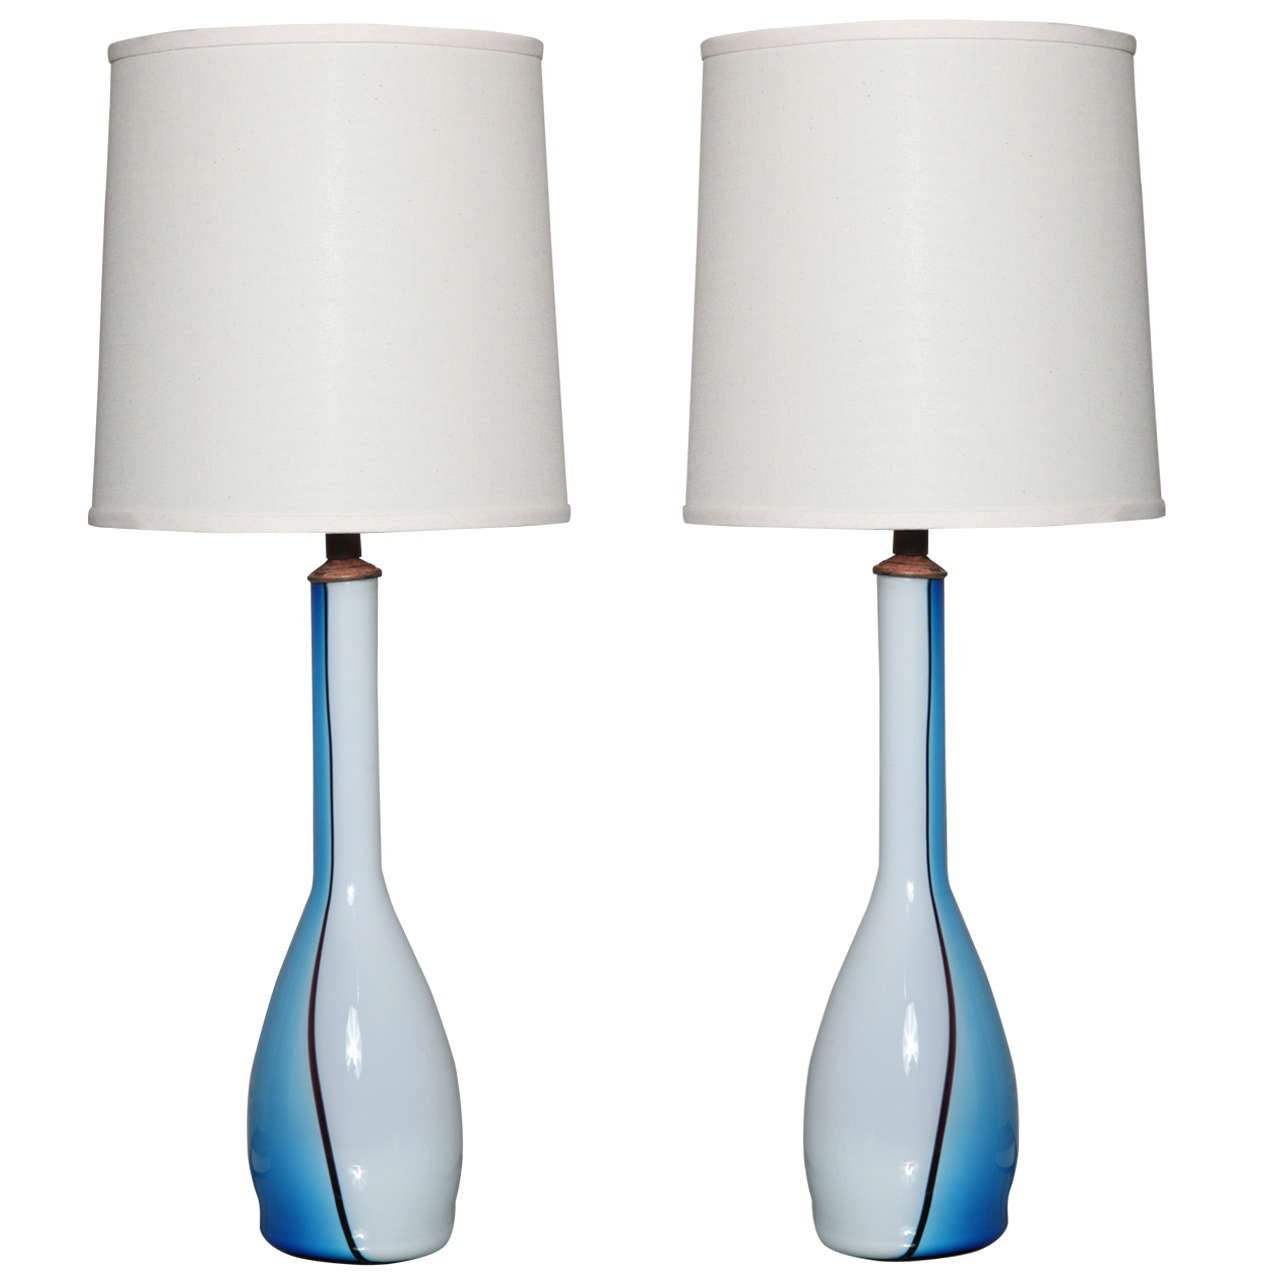 pair of turquoise and white murano glass table lamps at 1stdibs. Black Bedroom Furniture Sets. Home Design Ideas